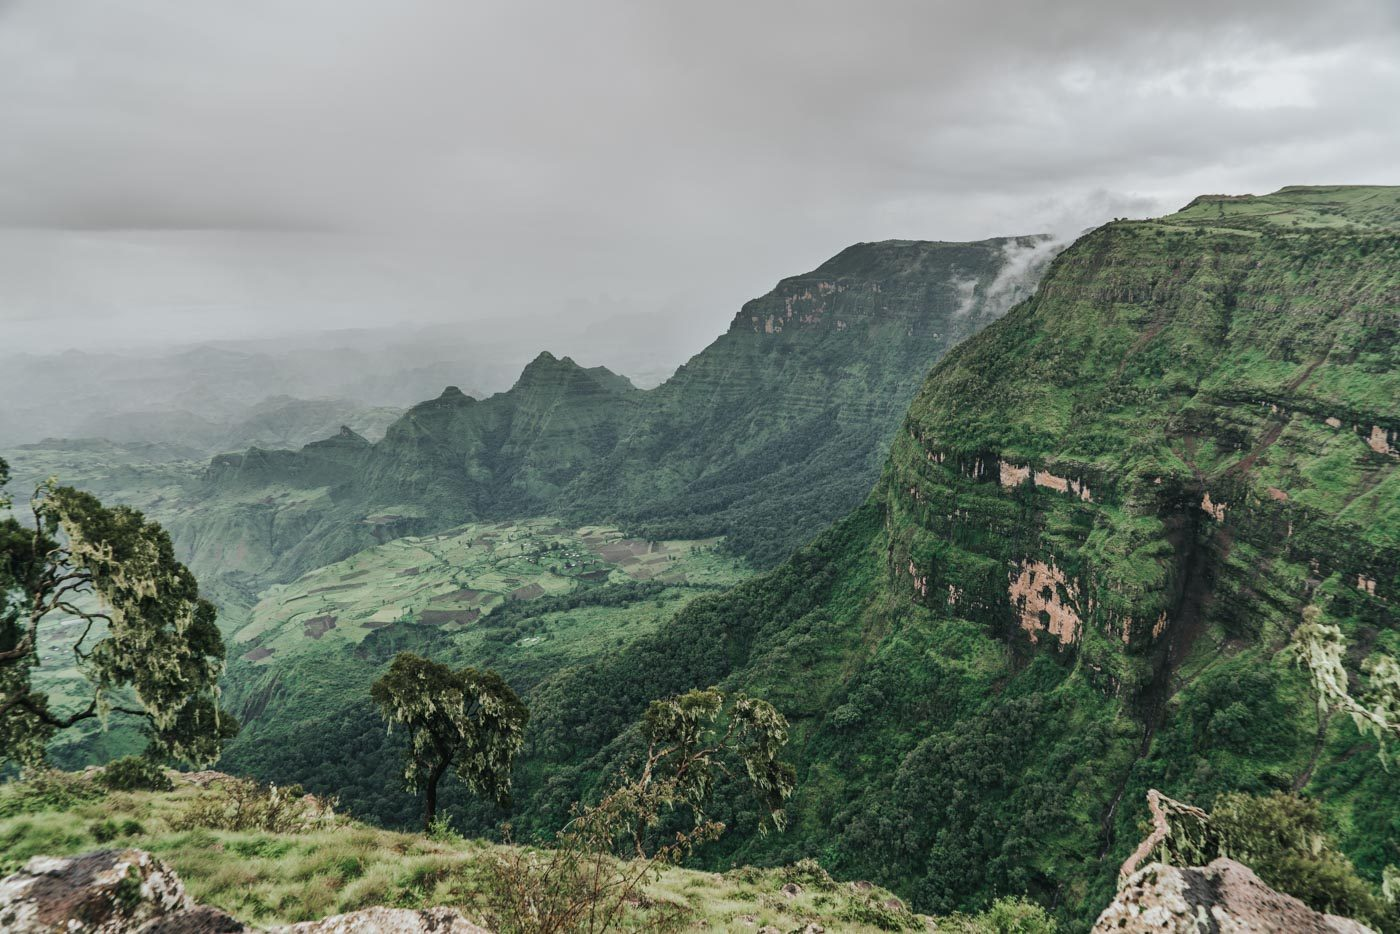 Views of Simien Mountains National Park, Ethiopia